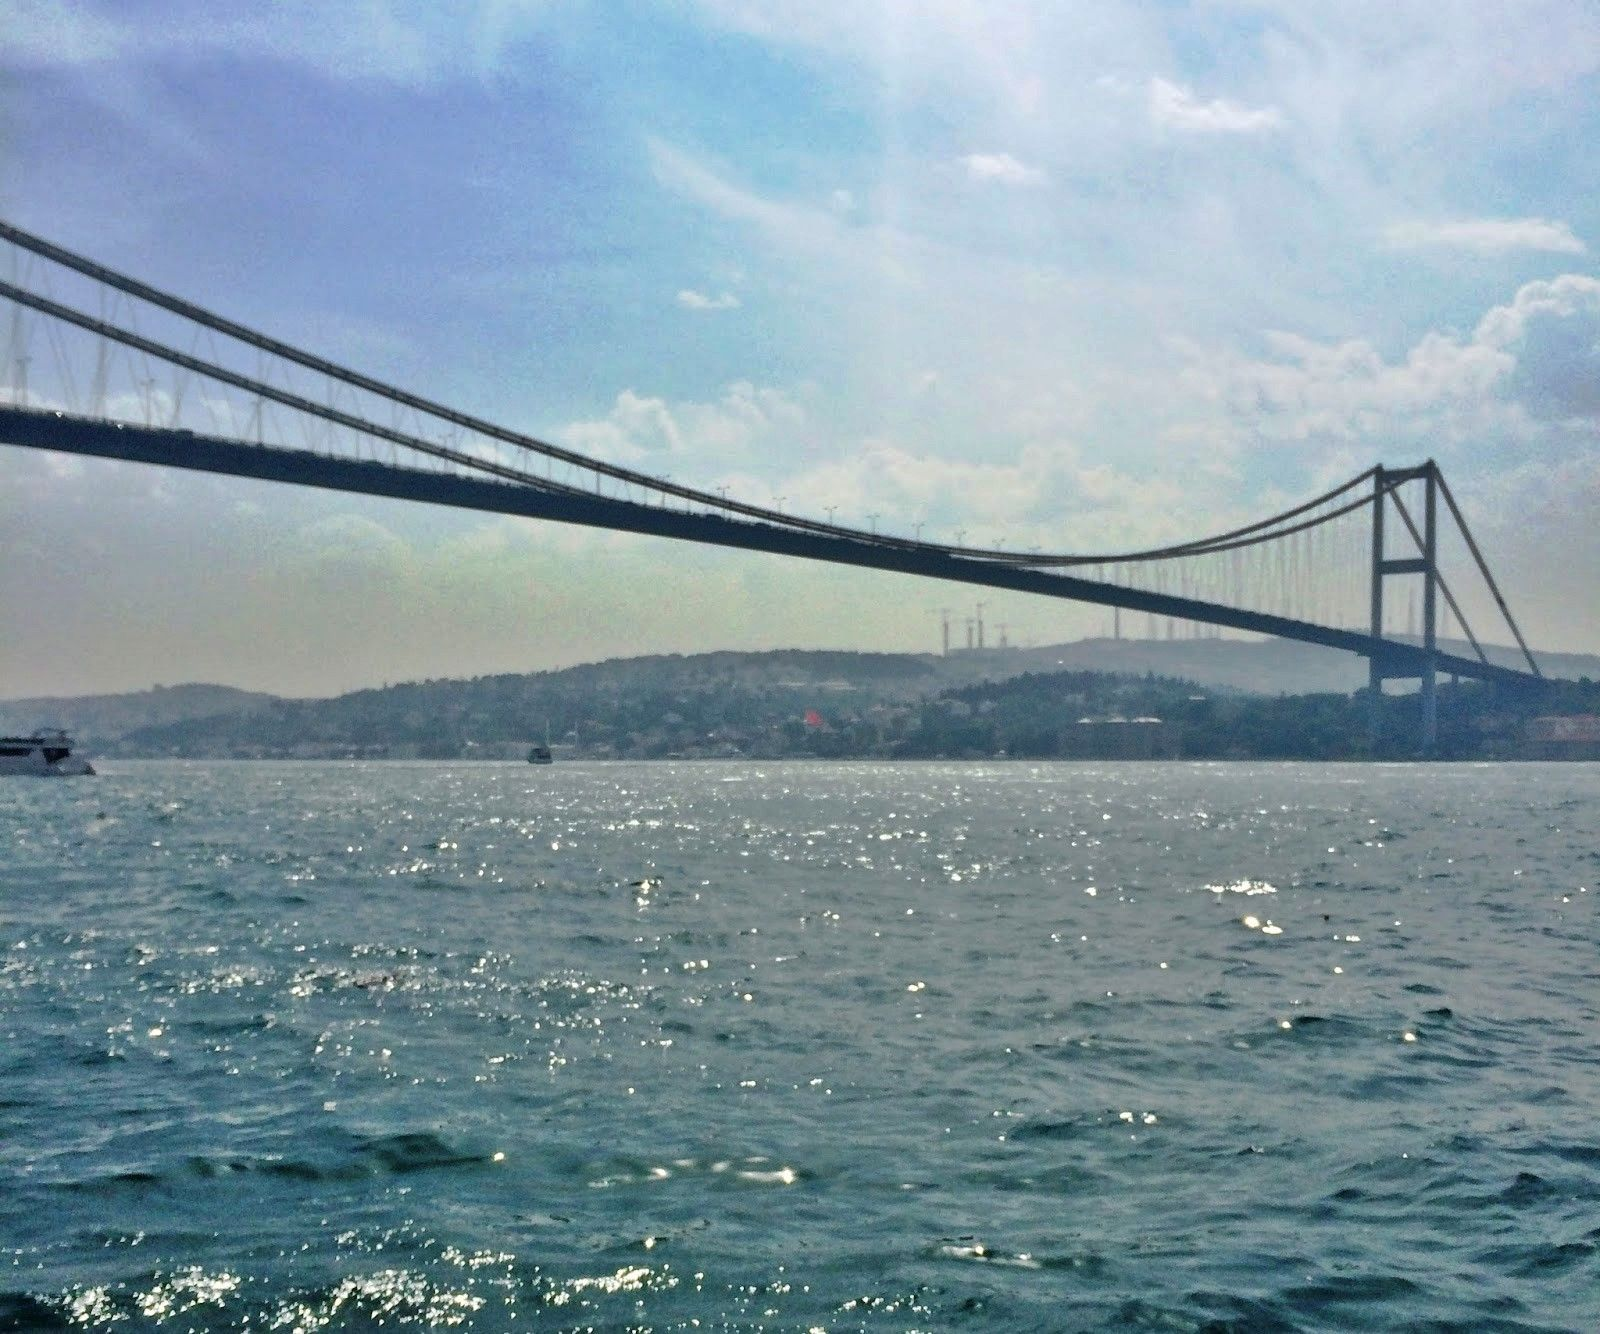 The Bosphorus Bridge, the first bridge, one of the three bridges that connects Europe and Asian, it was once the 4th longest bridge in the world.